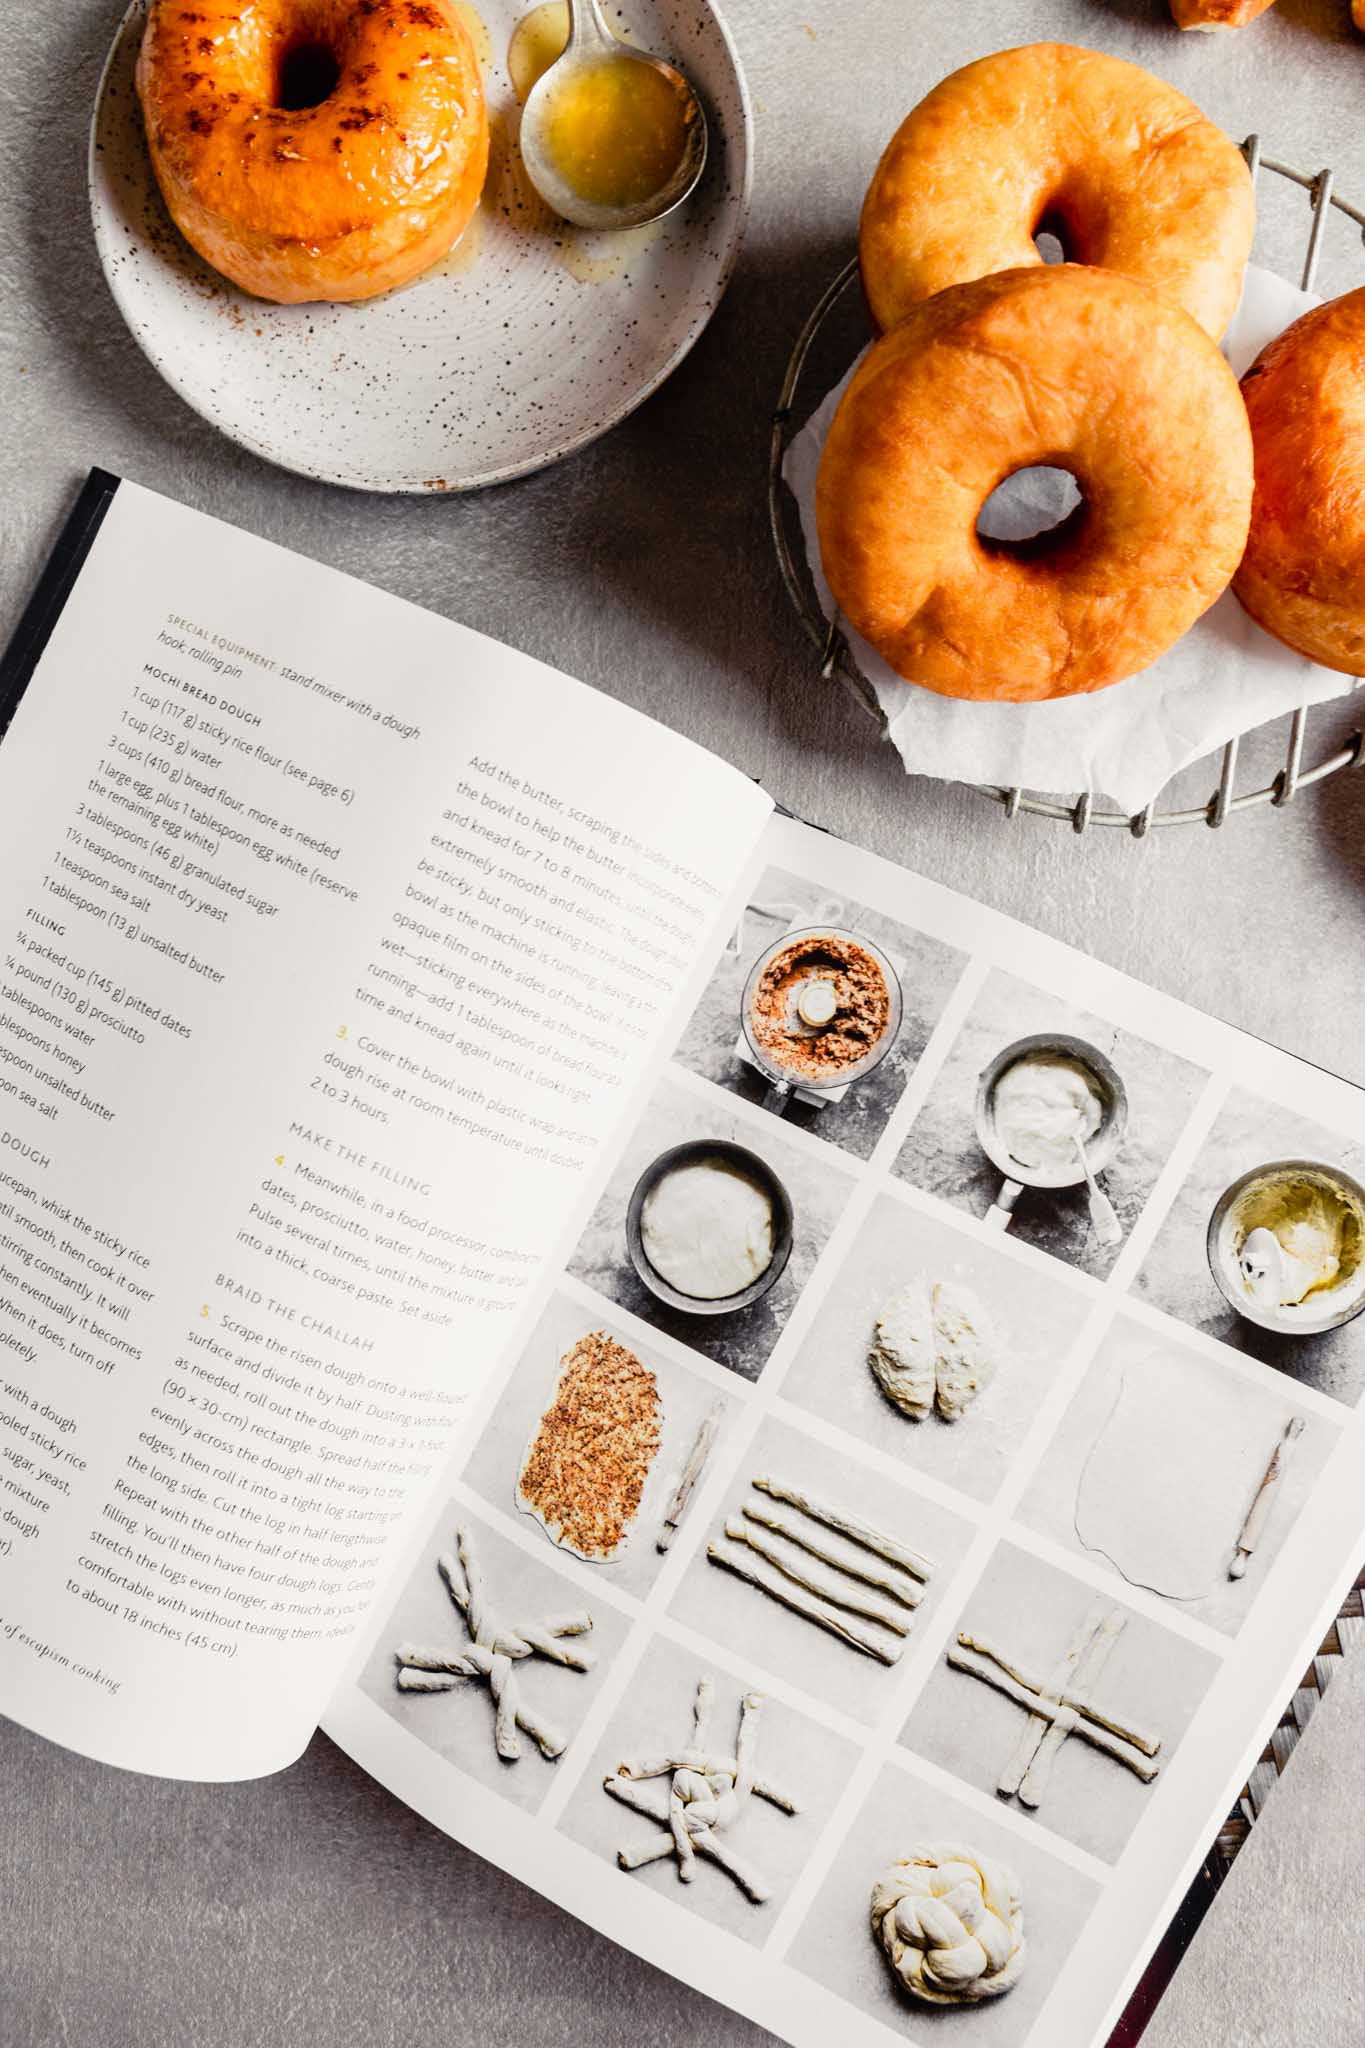 Overhead image of an open cookbook with donuts set around it